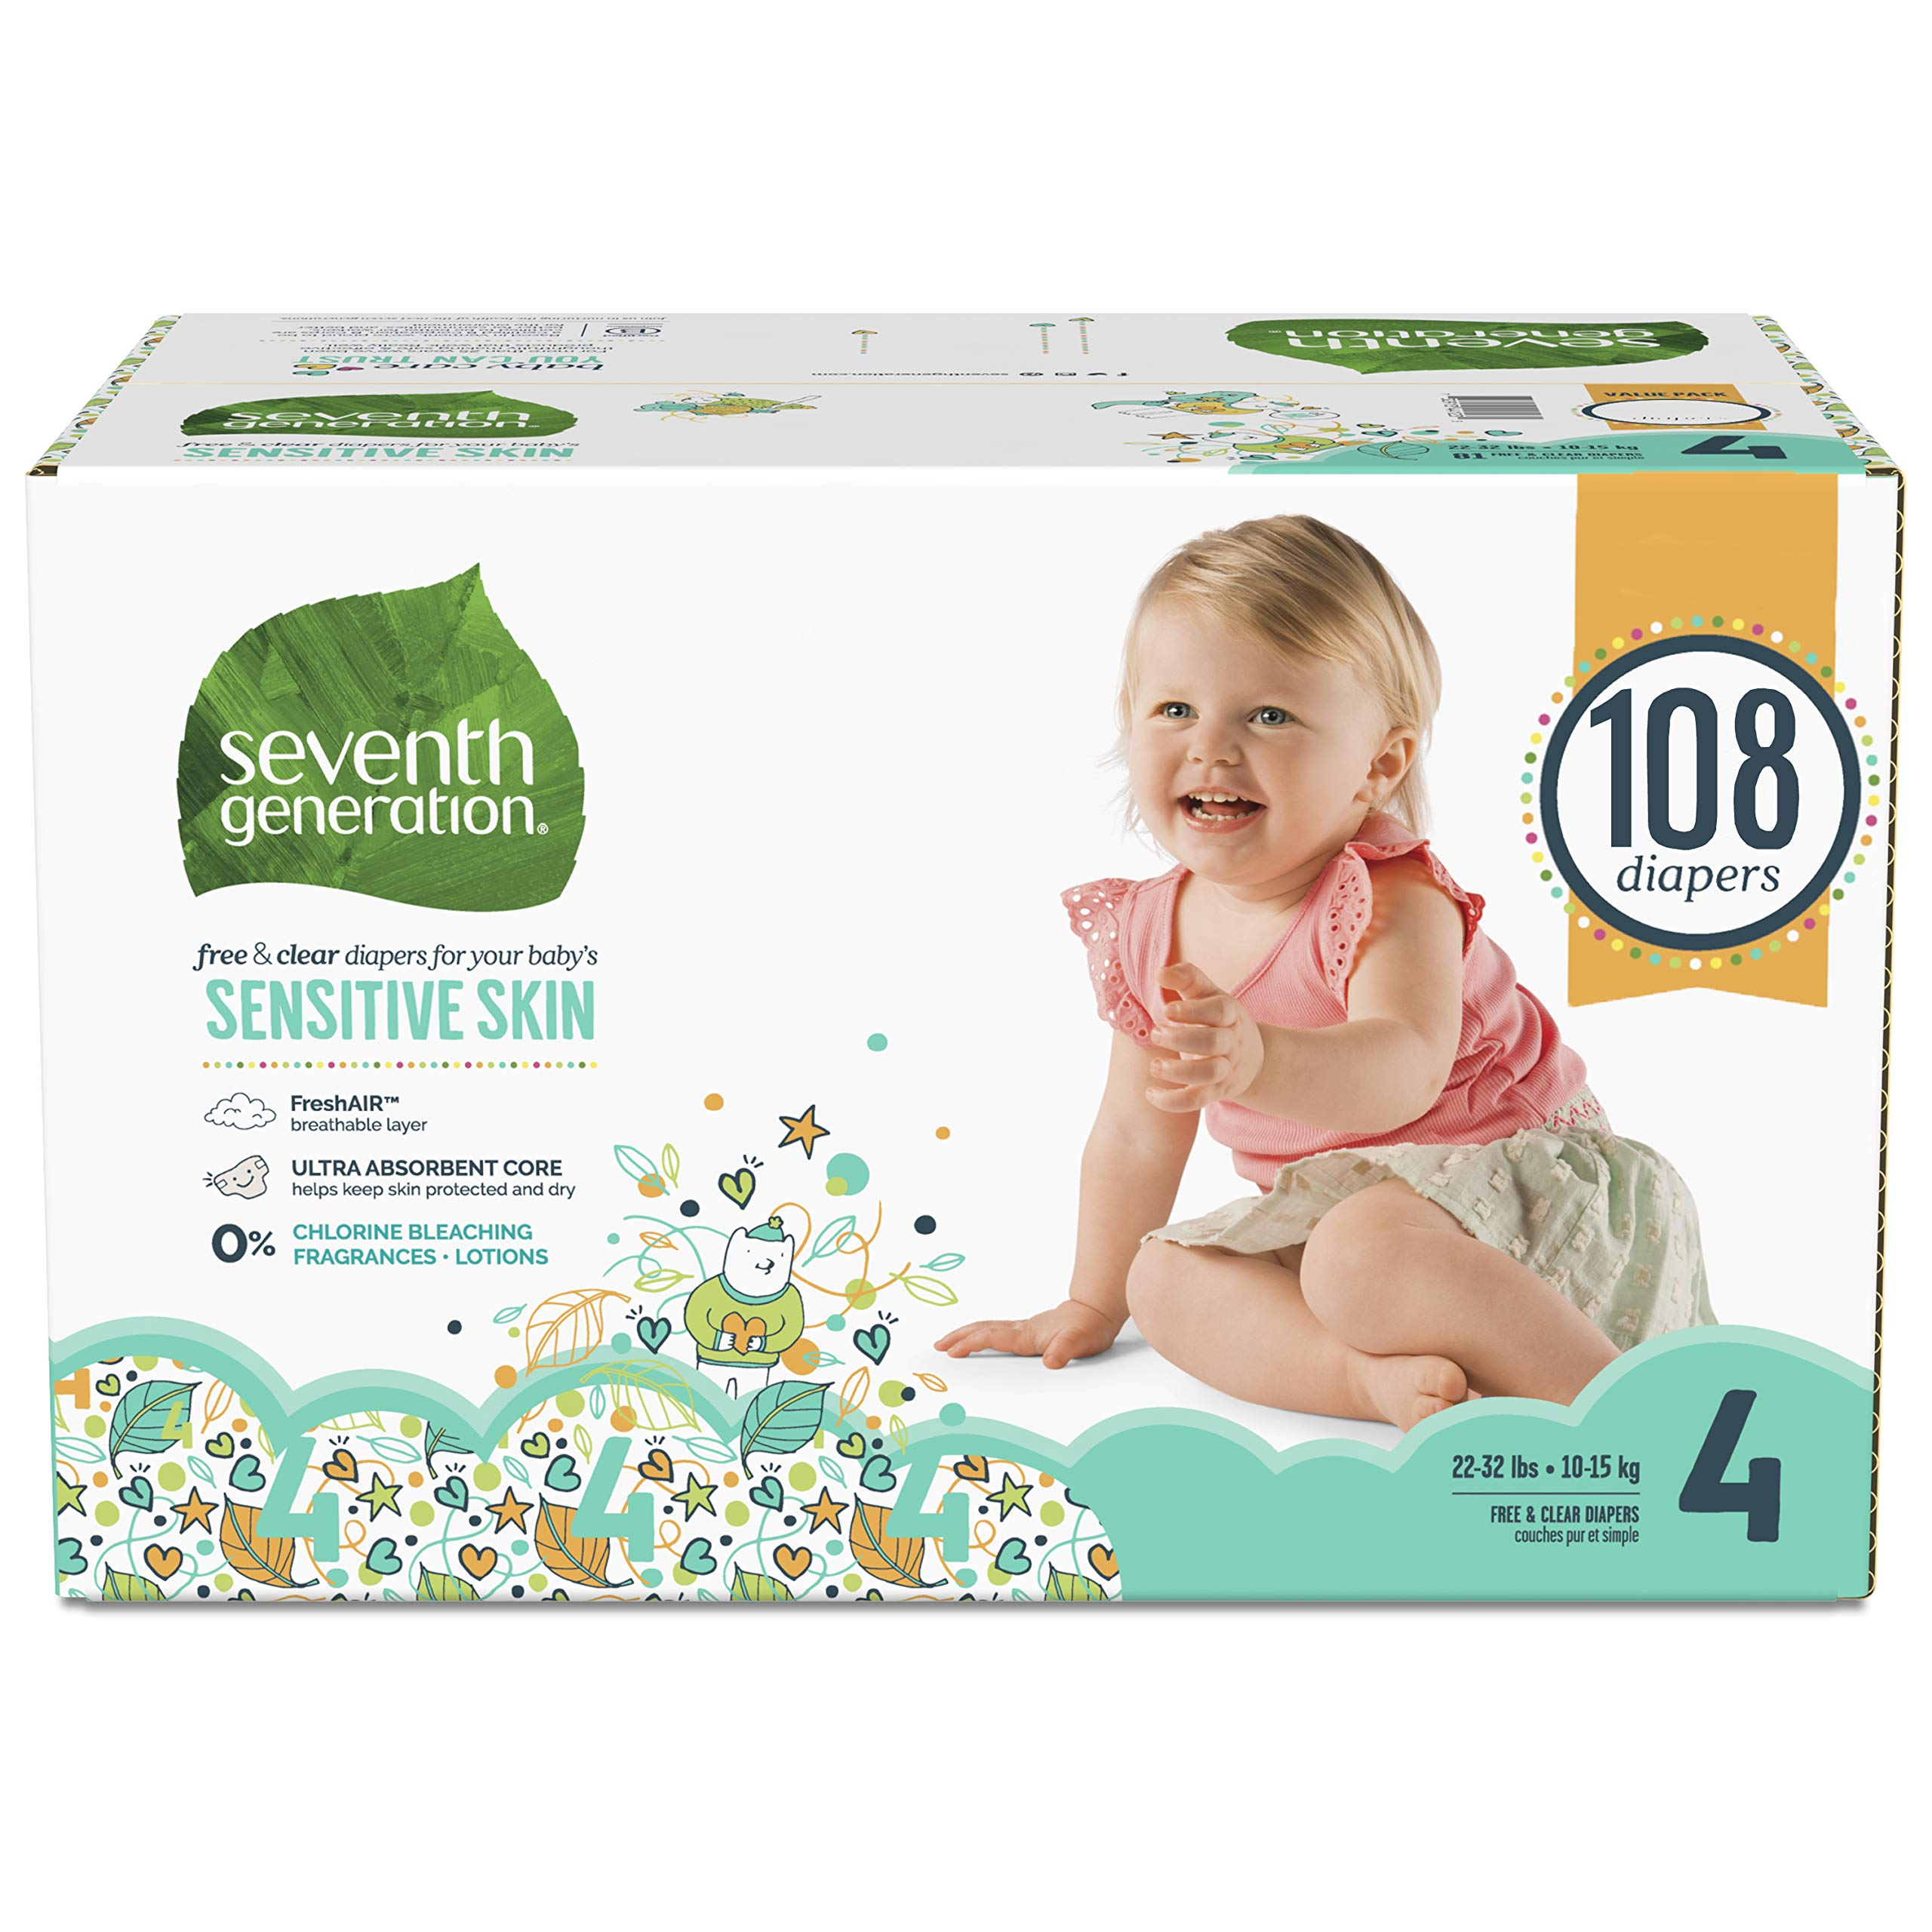 Seventh Generation Baby Diapers for Sensitive Skin, Animal Prints, Size 4, 108 Count (Packaging May Vary) by Seventh Generation